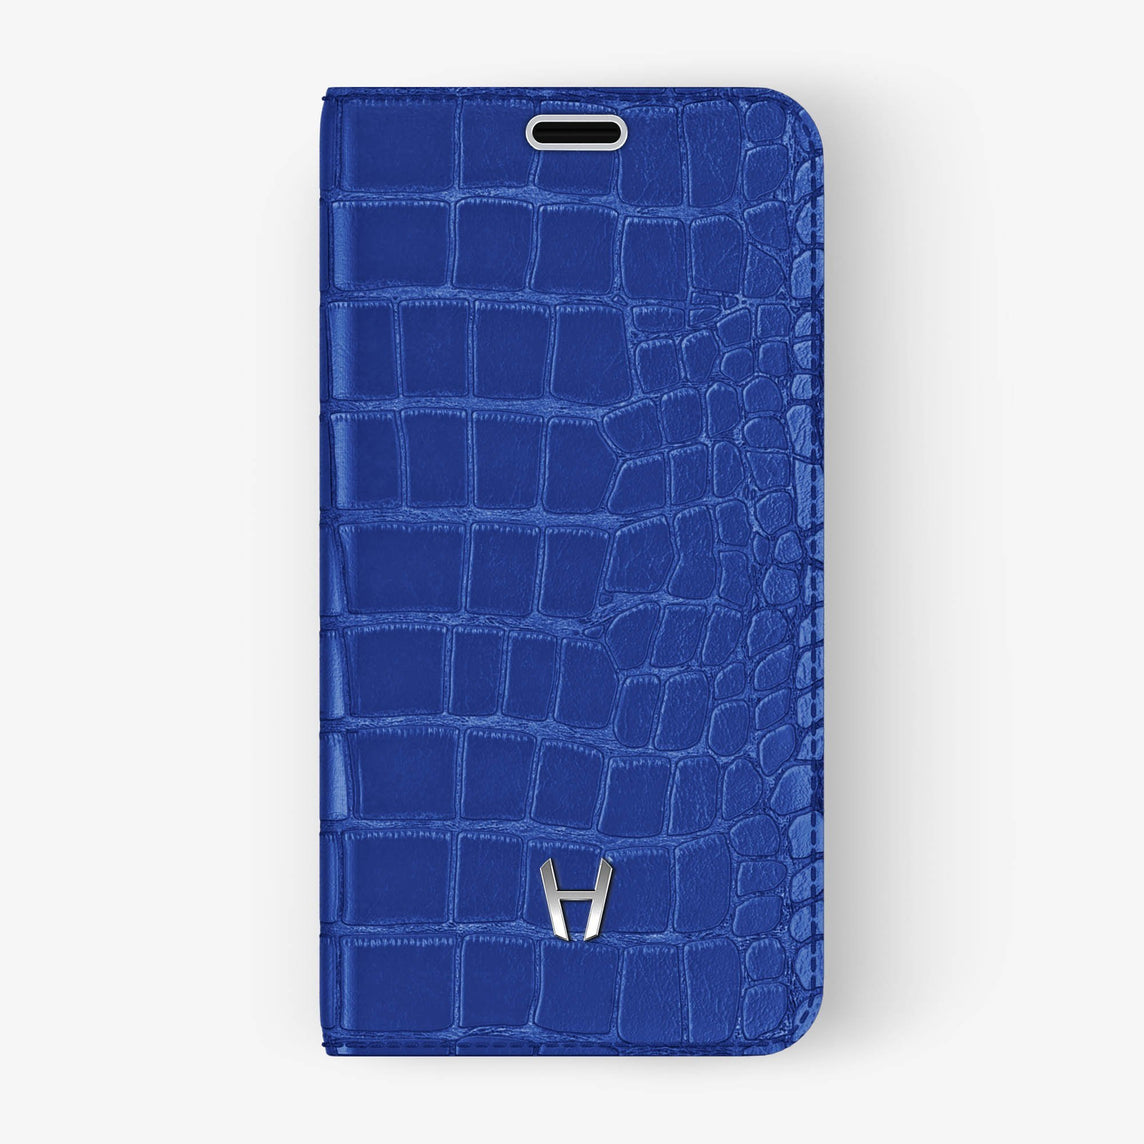 Peony Blue Alligator iPhone Folio Case for iPhone X finishing stainless steel - Hadoro Luxury Cases